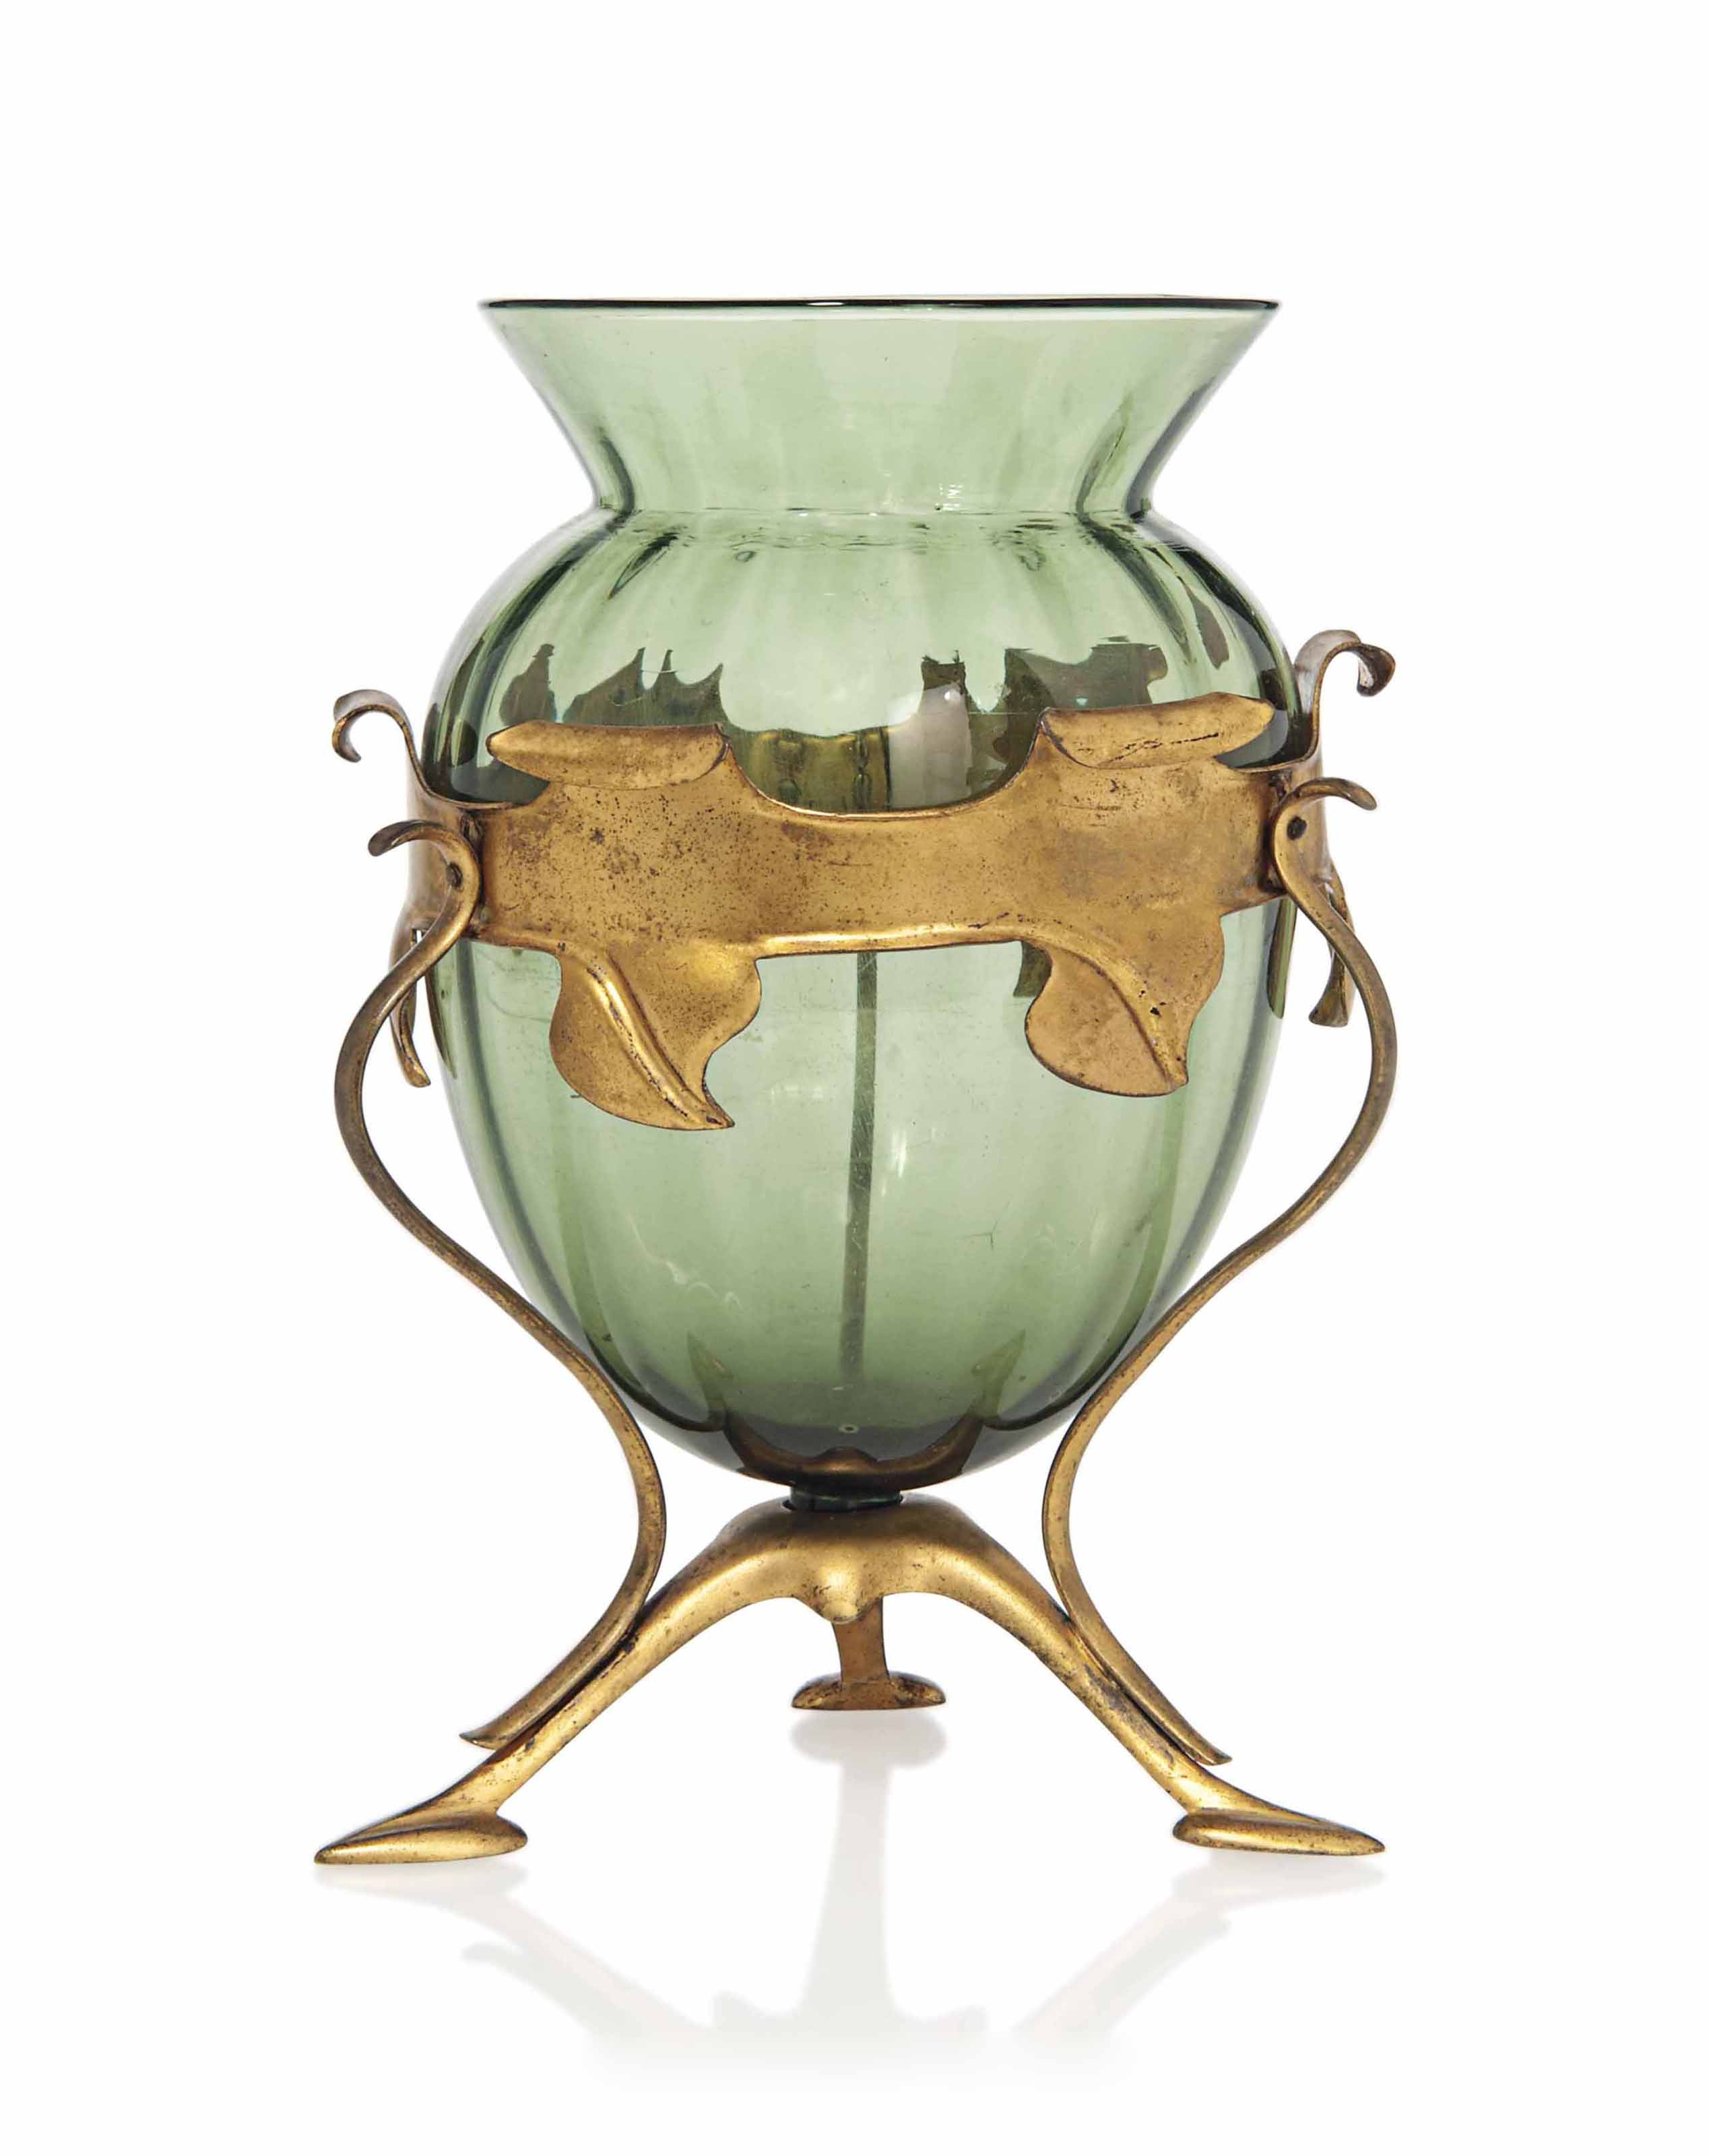 A W.A.S. BENSON (1854-1924) AND JAMES POWELL & SONS BRASS AND GLASS VASE